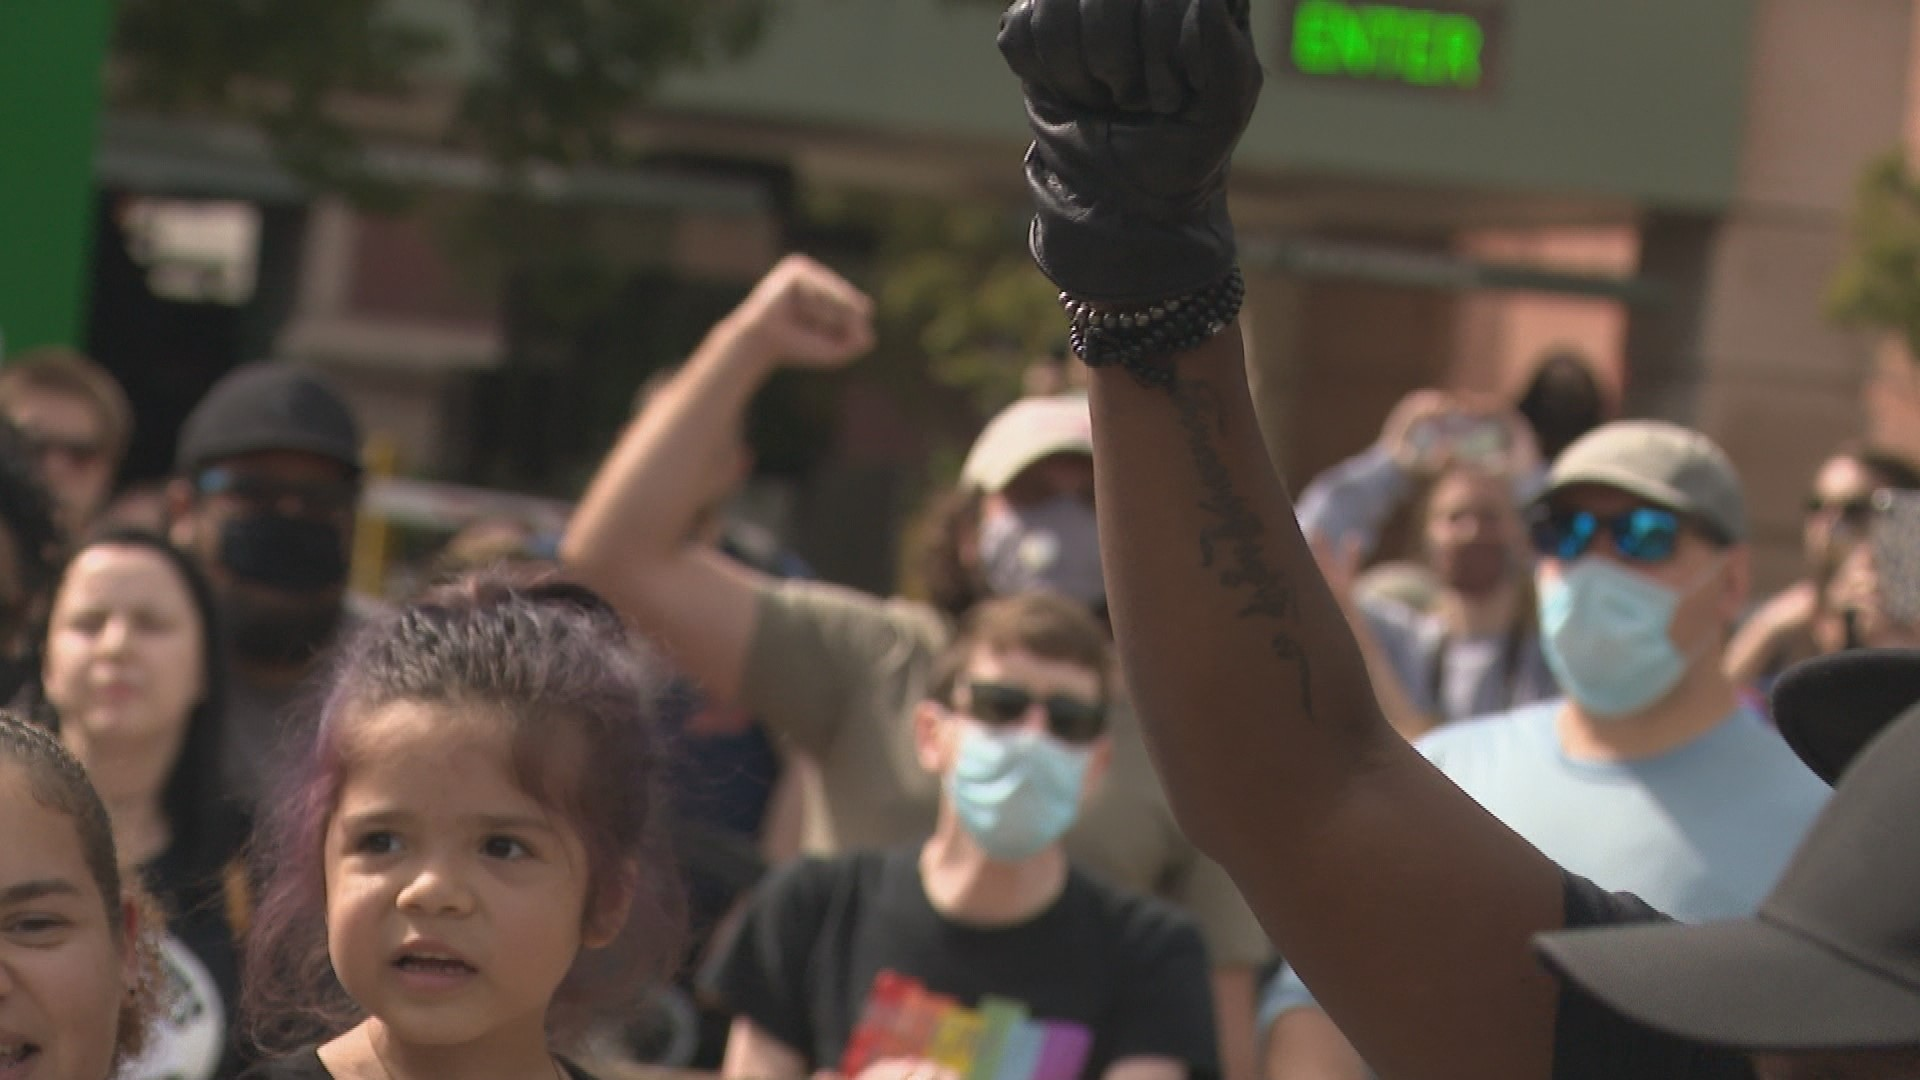 Protesters held two separate events in Grand Rapids June 3, 2020, where one was silent and the other was vocal.{ }(WWMT/Jason Heeres)